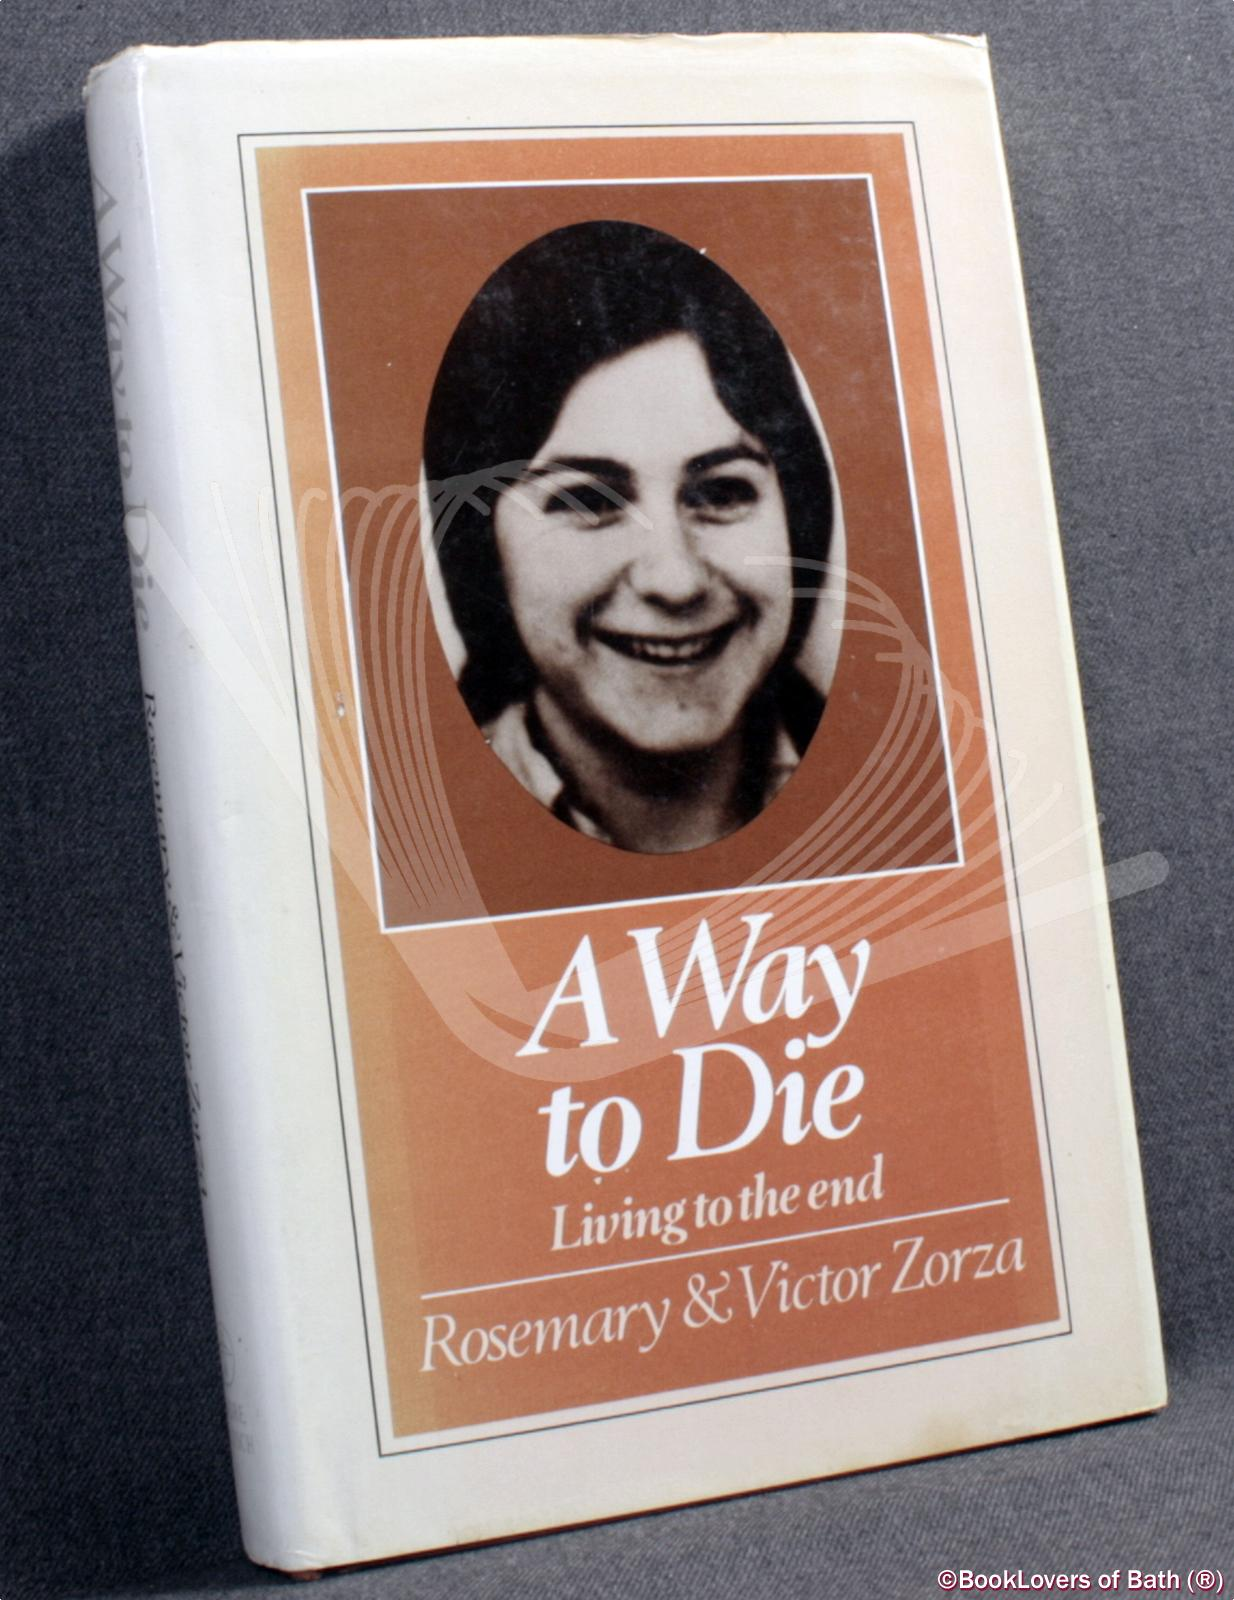 A Way to Die: Living to the End - Rosemary & Victor Zorza